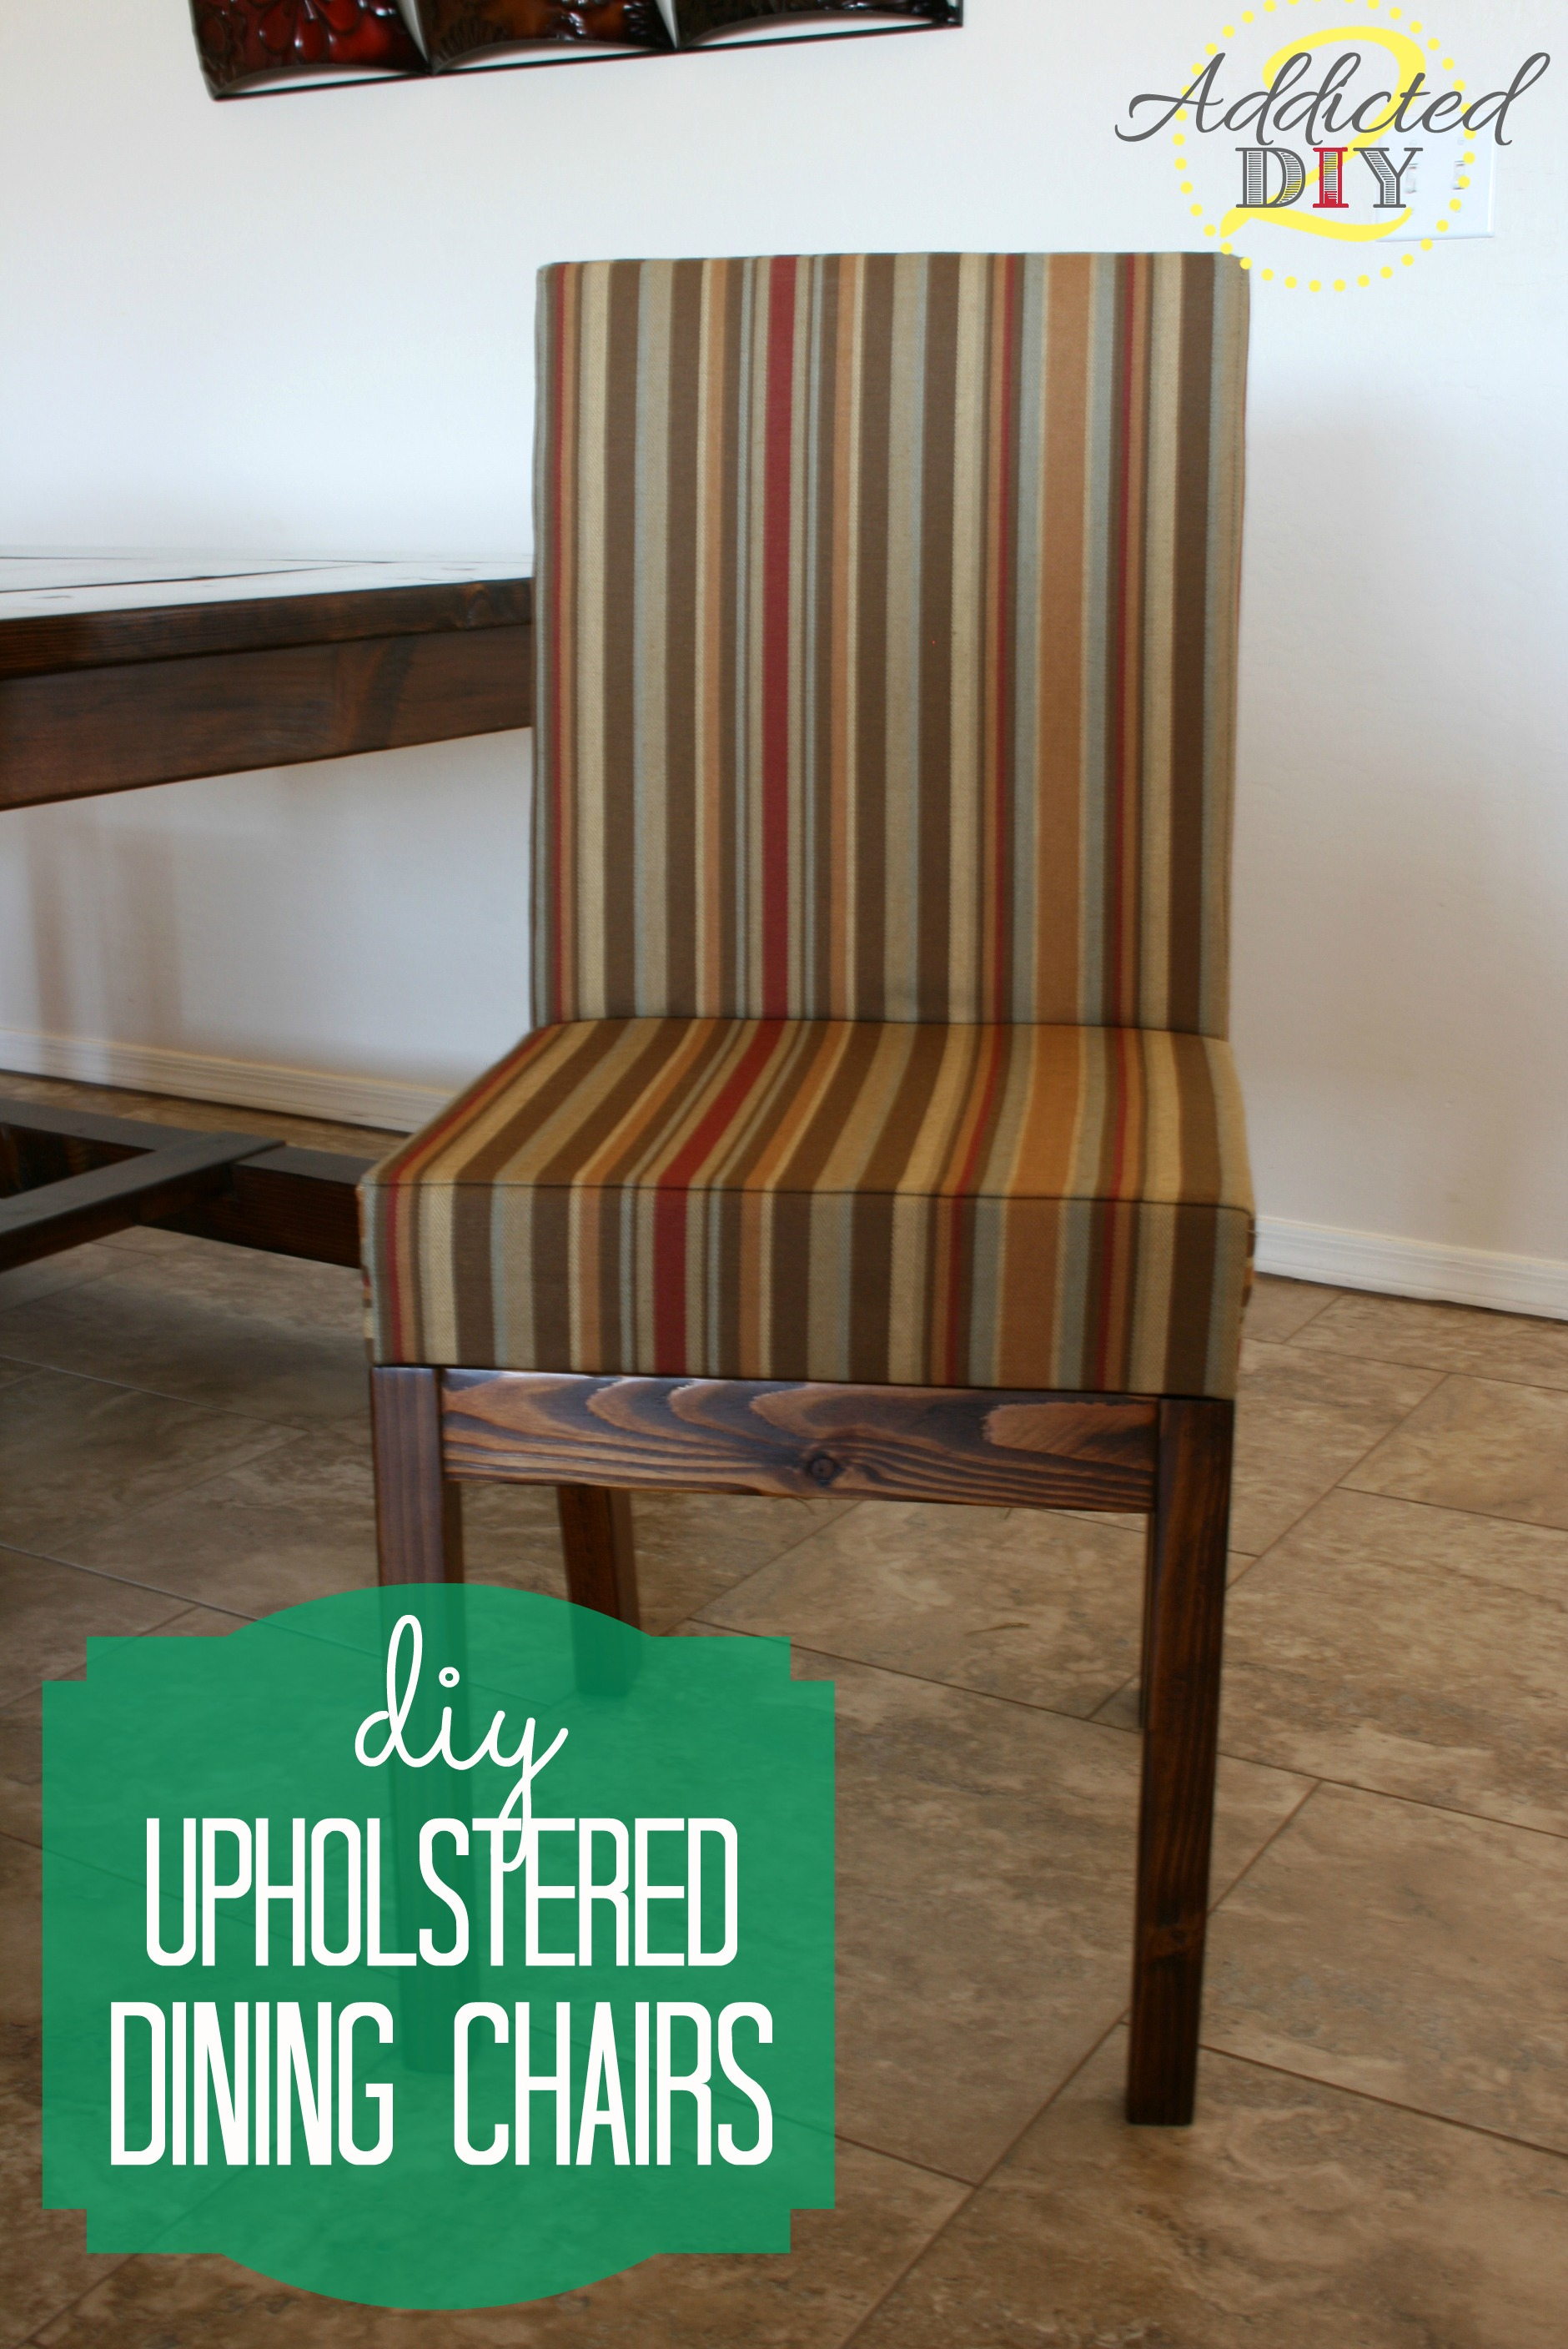 Diy Upholstered Dining Chairs Photo